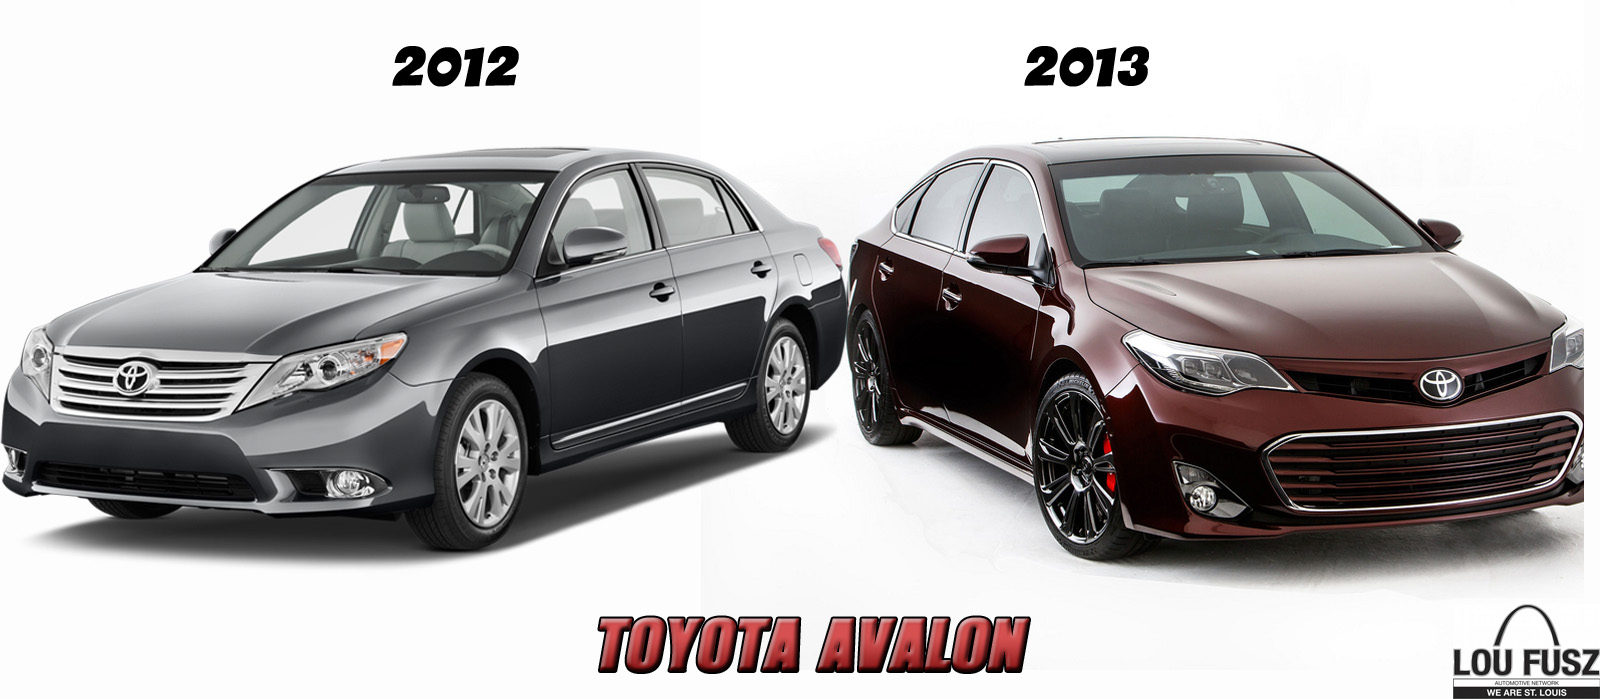 2012 Vs 2013 Toyota Avalon Why Quot Only The Name Remains